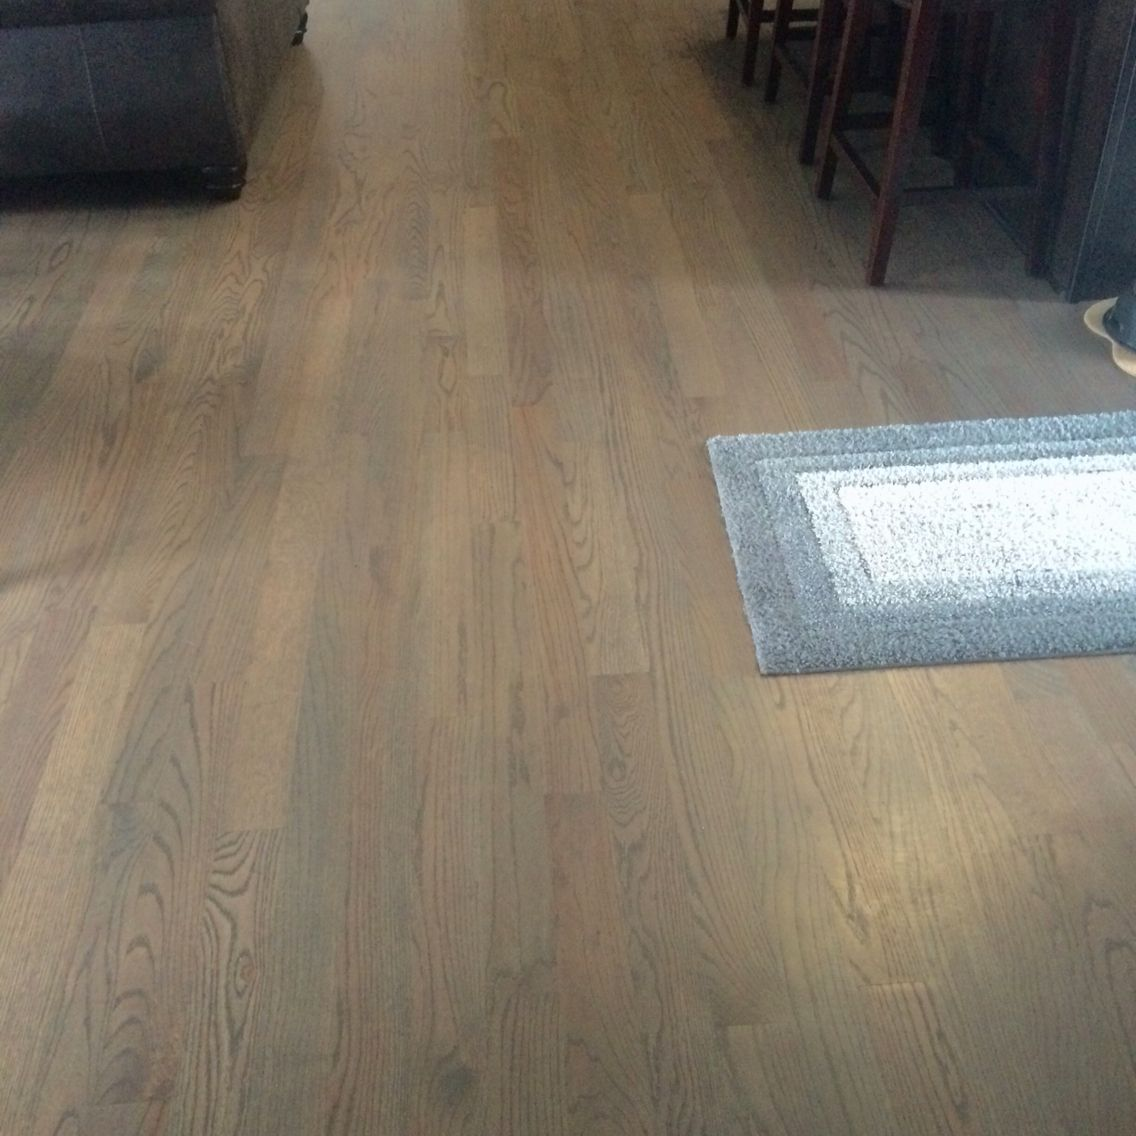 Red Oak Hardwood Floors Stained Clic